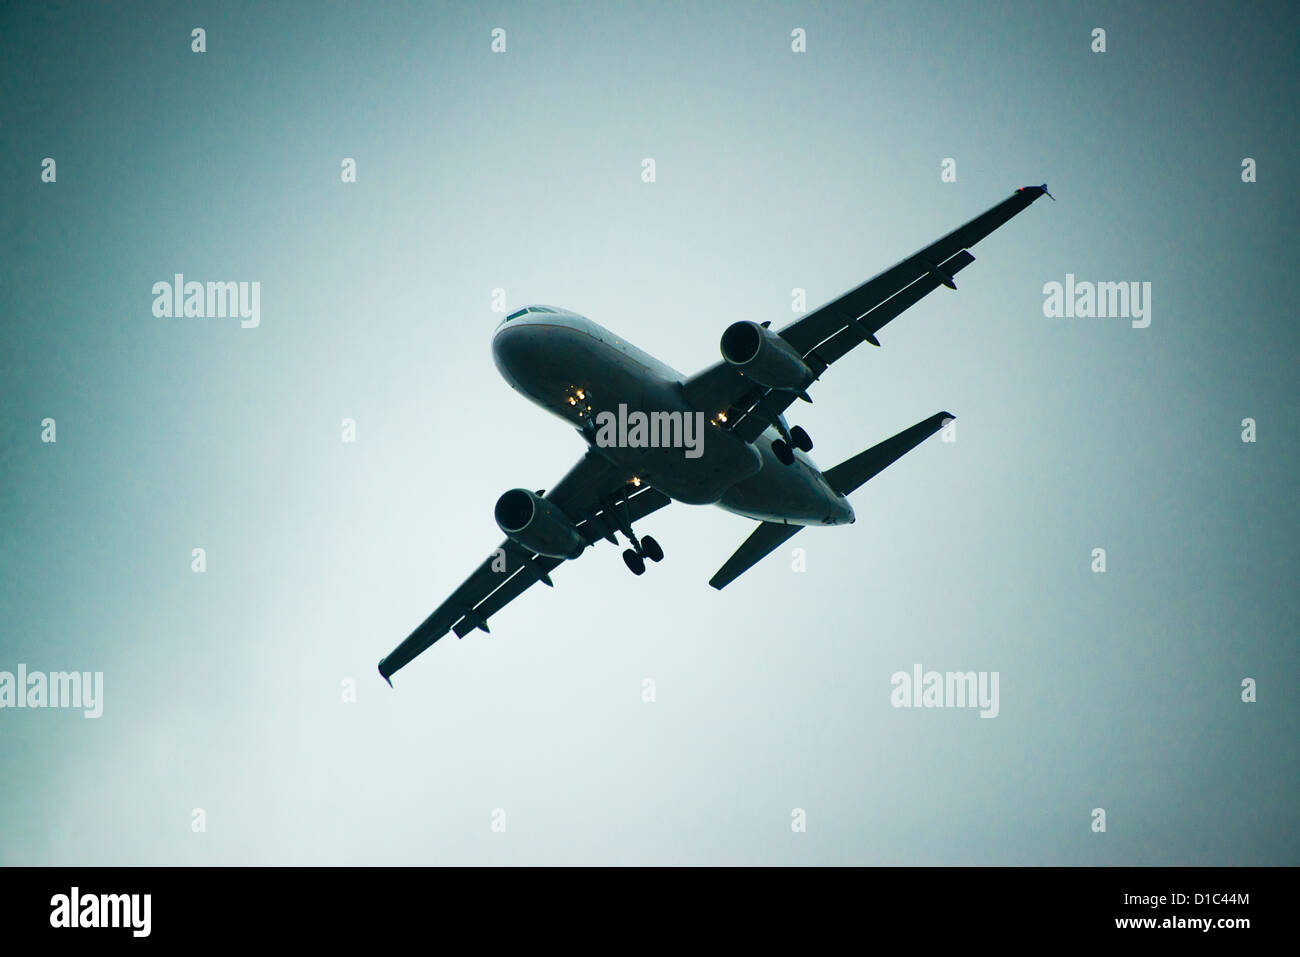 Jet airplane in flight. - Stock Image